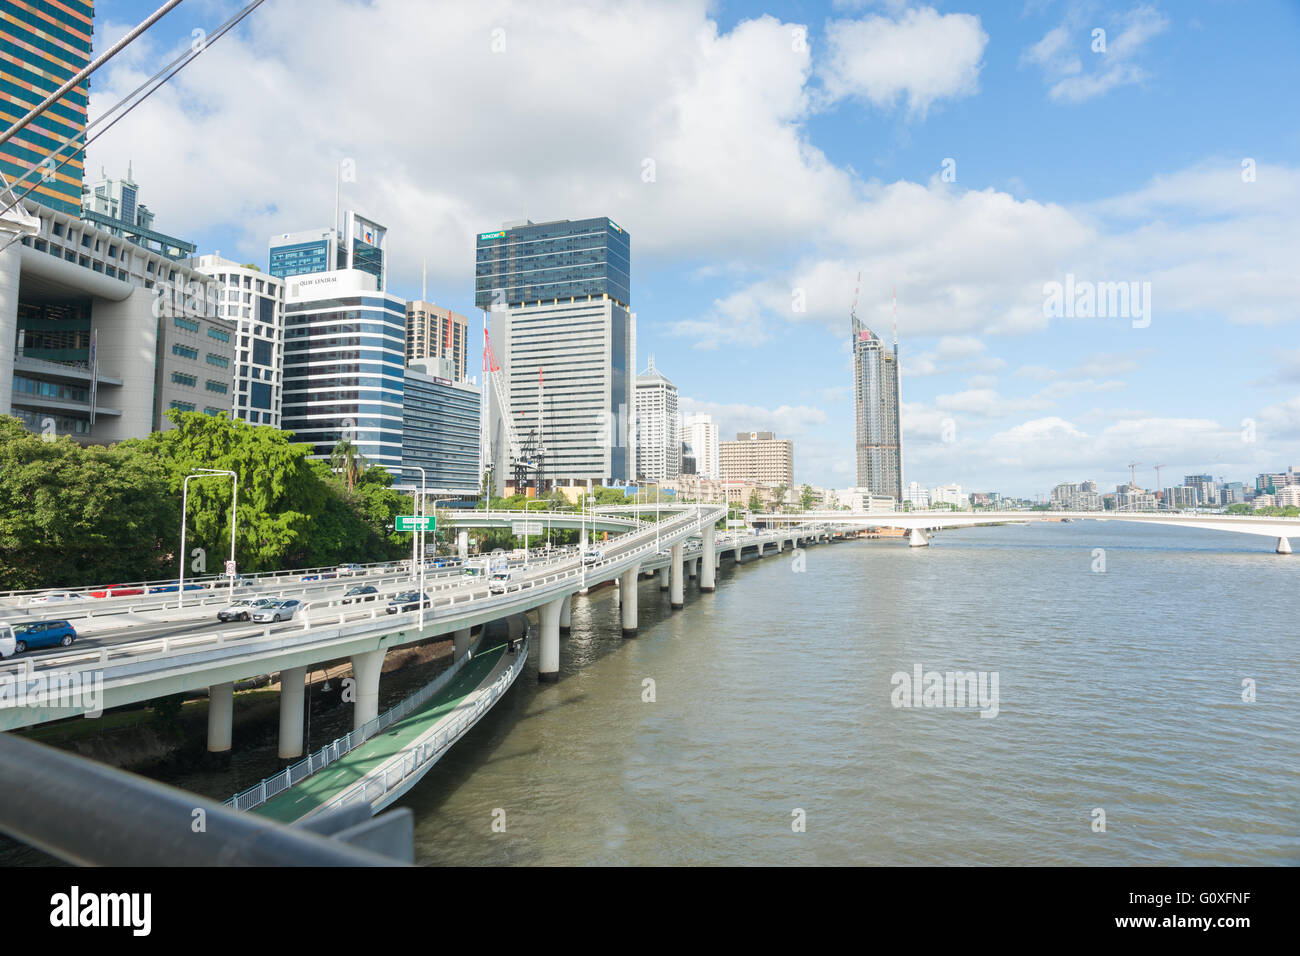 Brisbane River through city with elevated highways along the river and urban skyline in state capital, Queensland - Stock Image